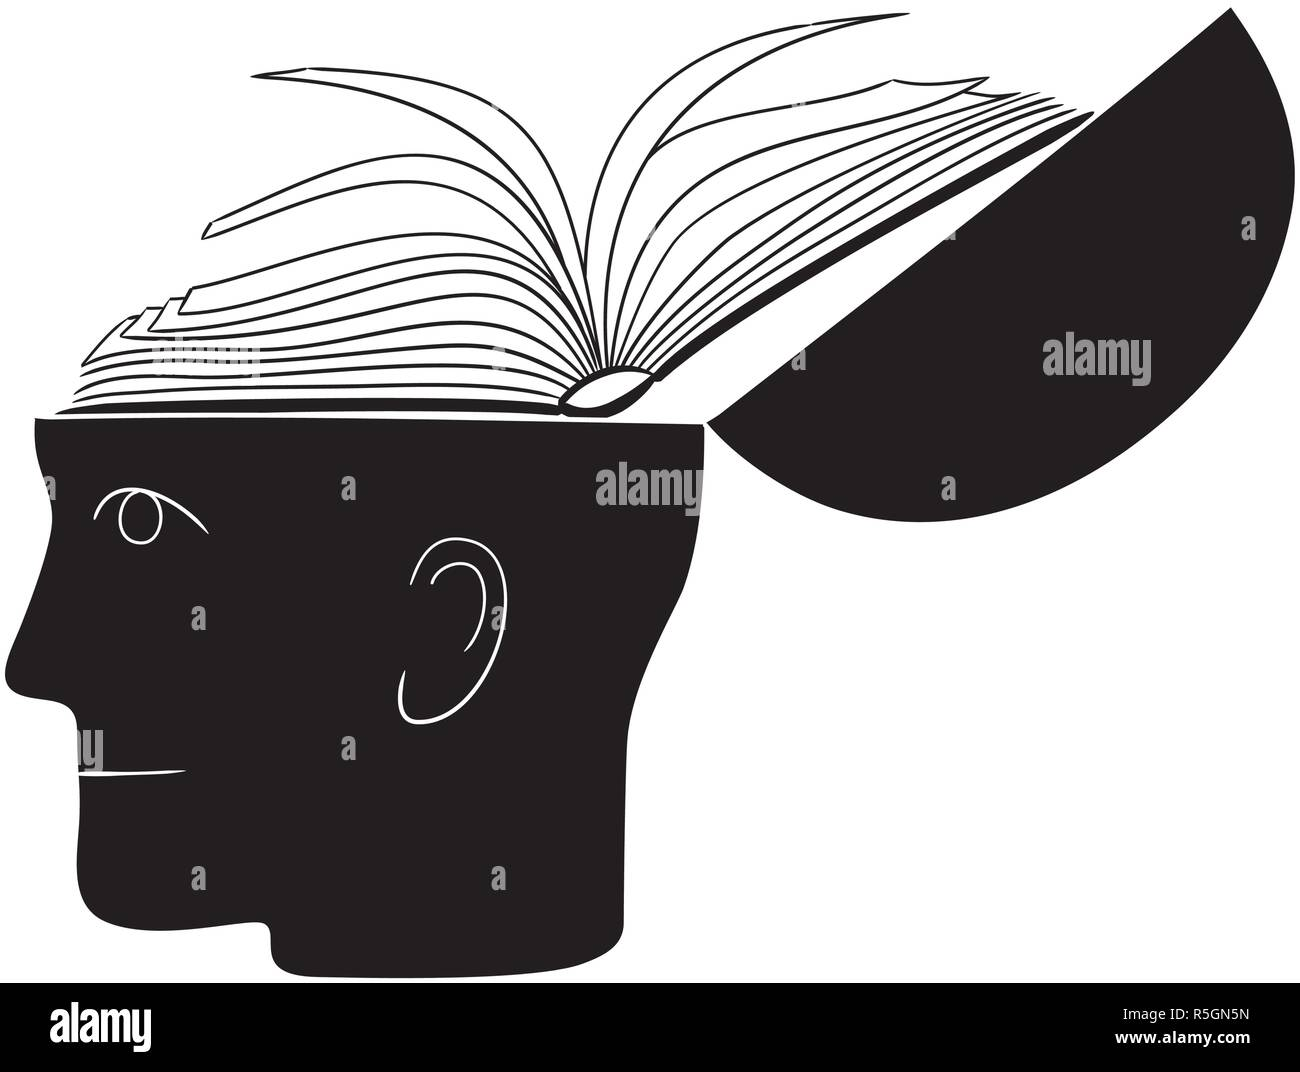 Symbolic drawing of head and knowledge with culture - Stock Image